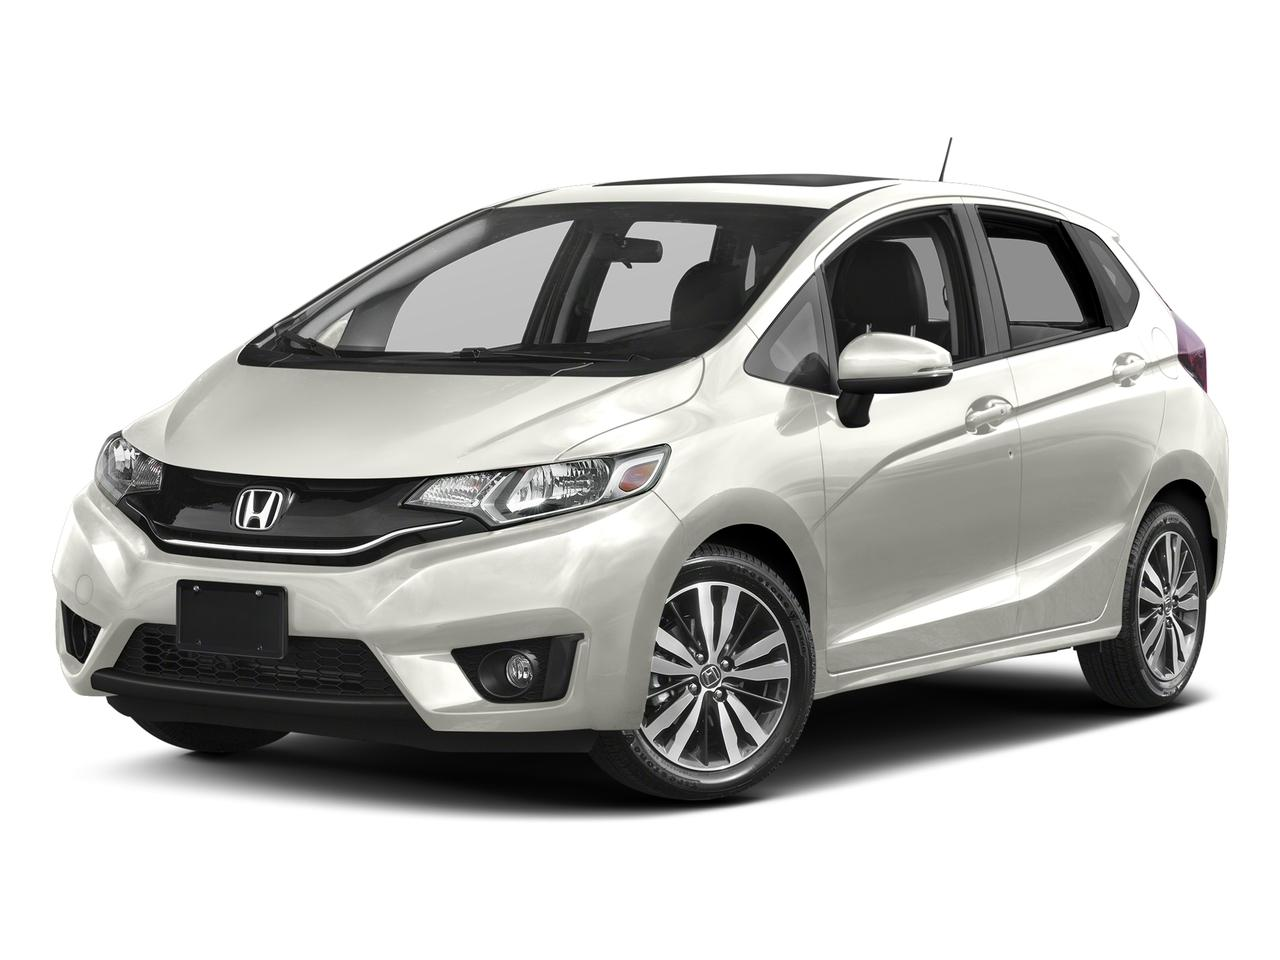 2017 Honda Fit Vehicle Photo in Peoria, IL 61615